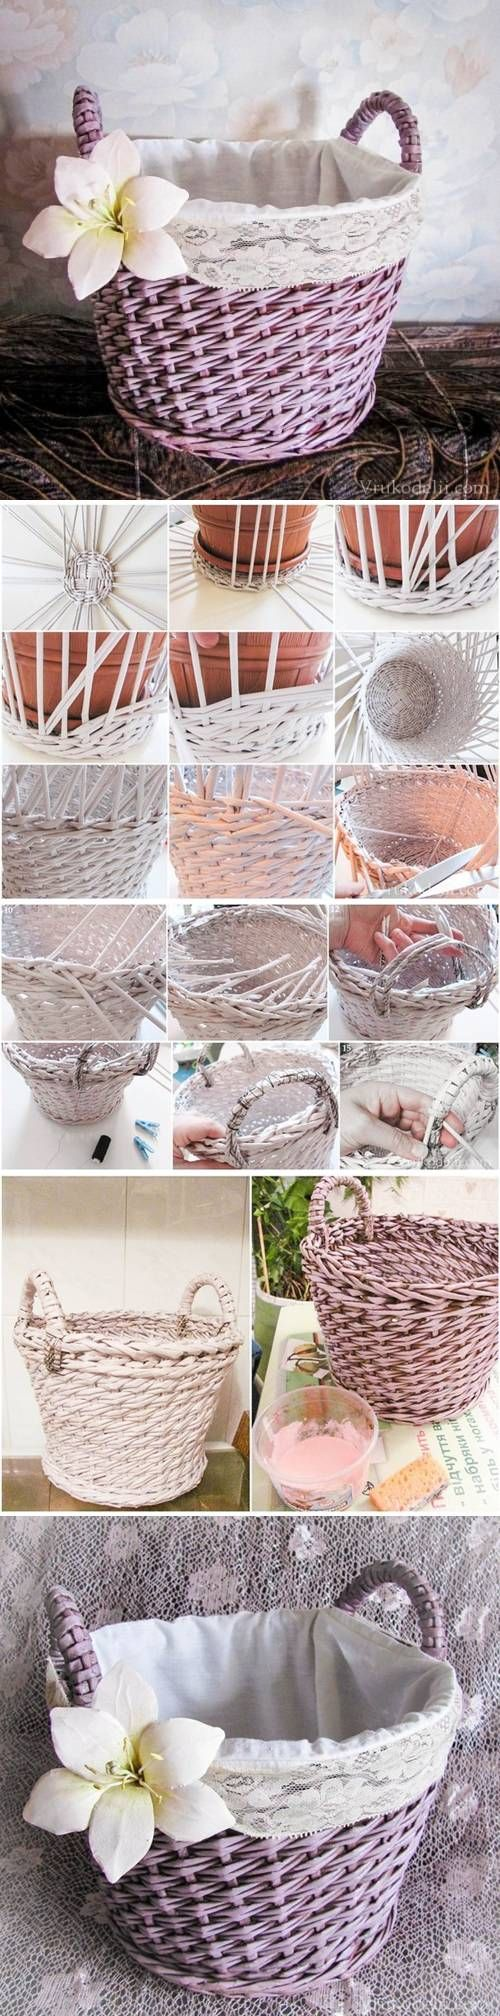 DIY Newspaper Basket Layer Weave DIY Projects | UsefulDIY.com Follow Us on Facebook ==> http://www.facebook.com/UsefulDiy